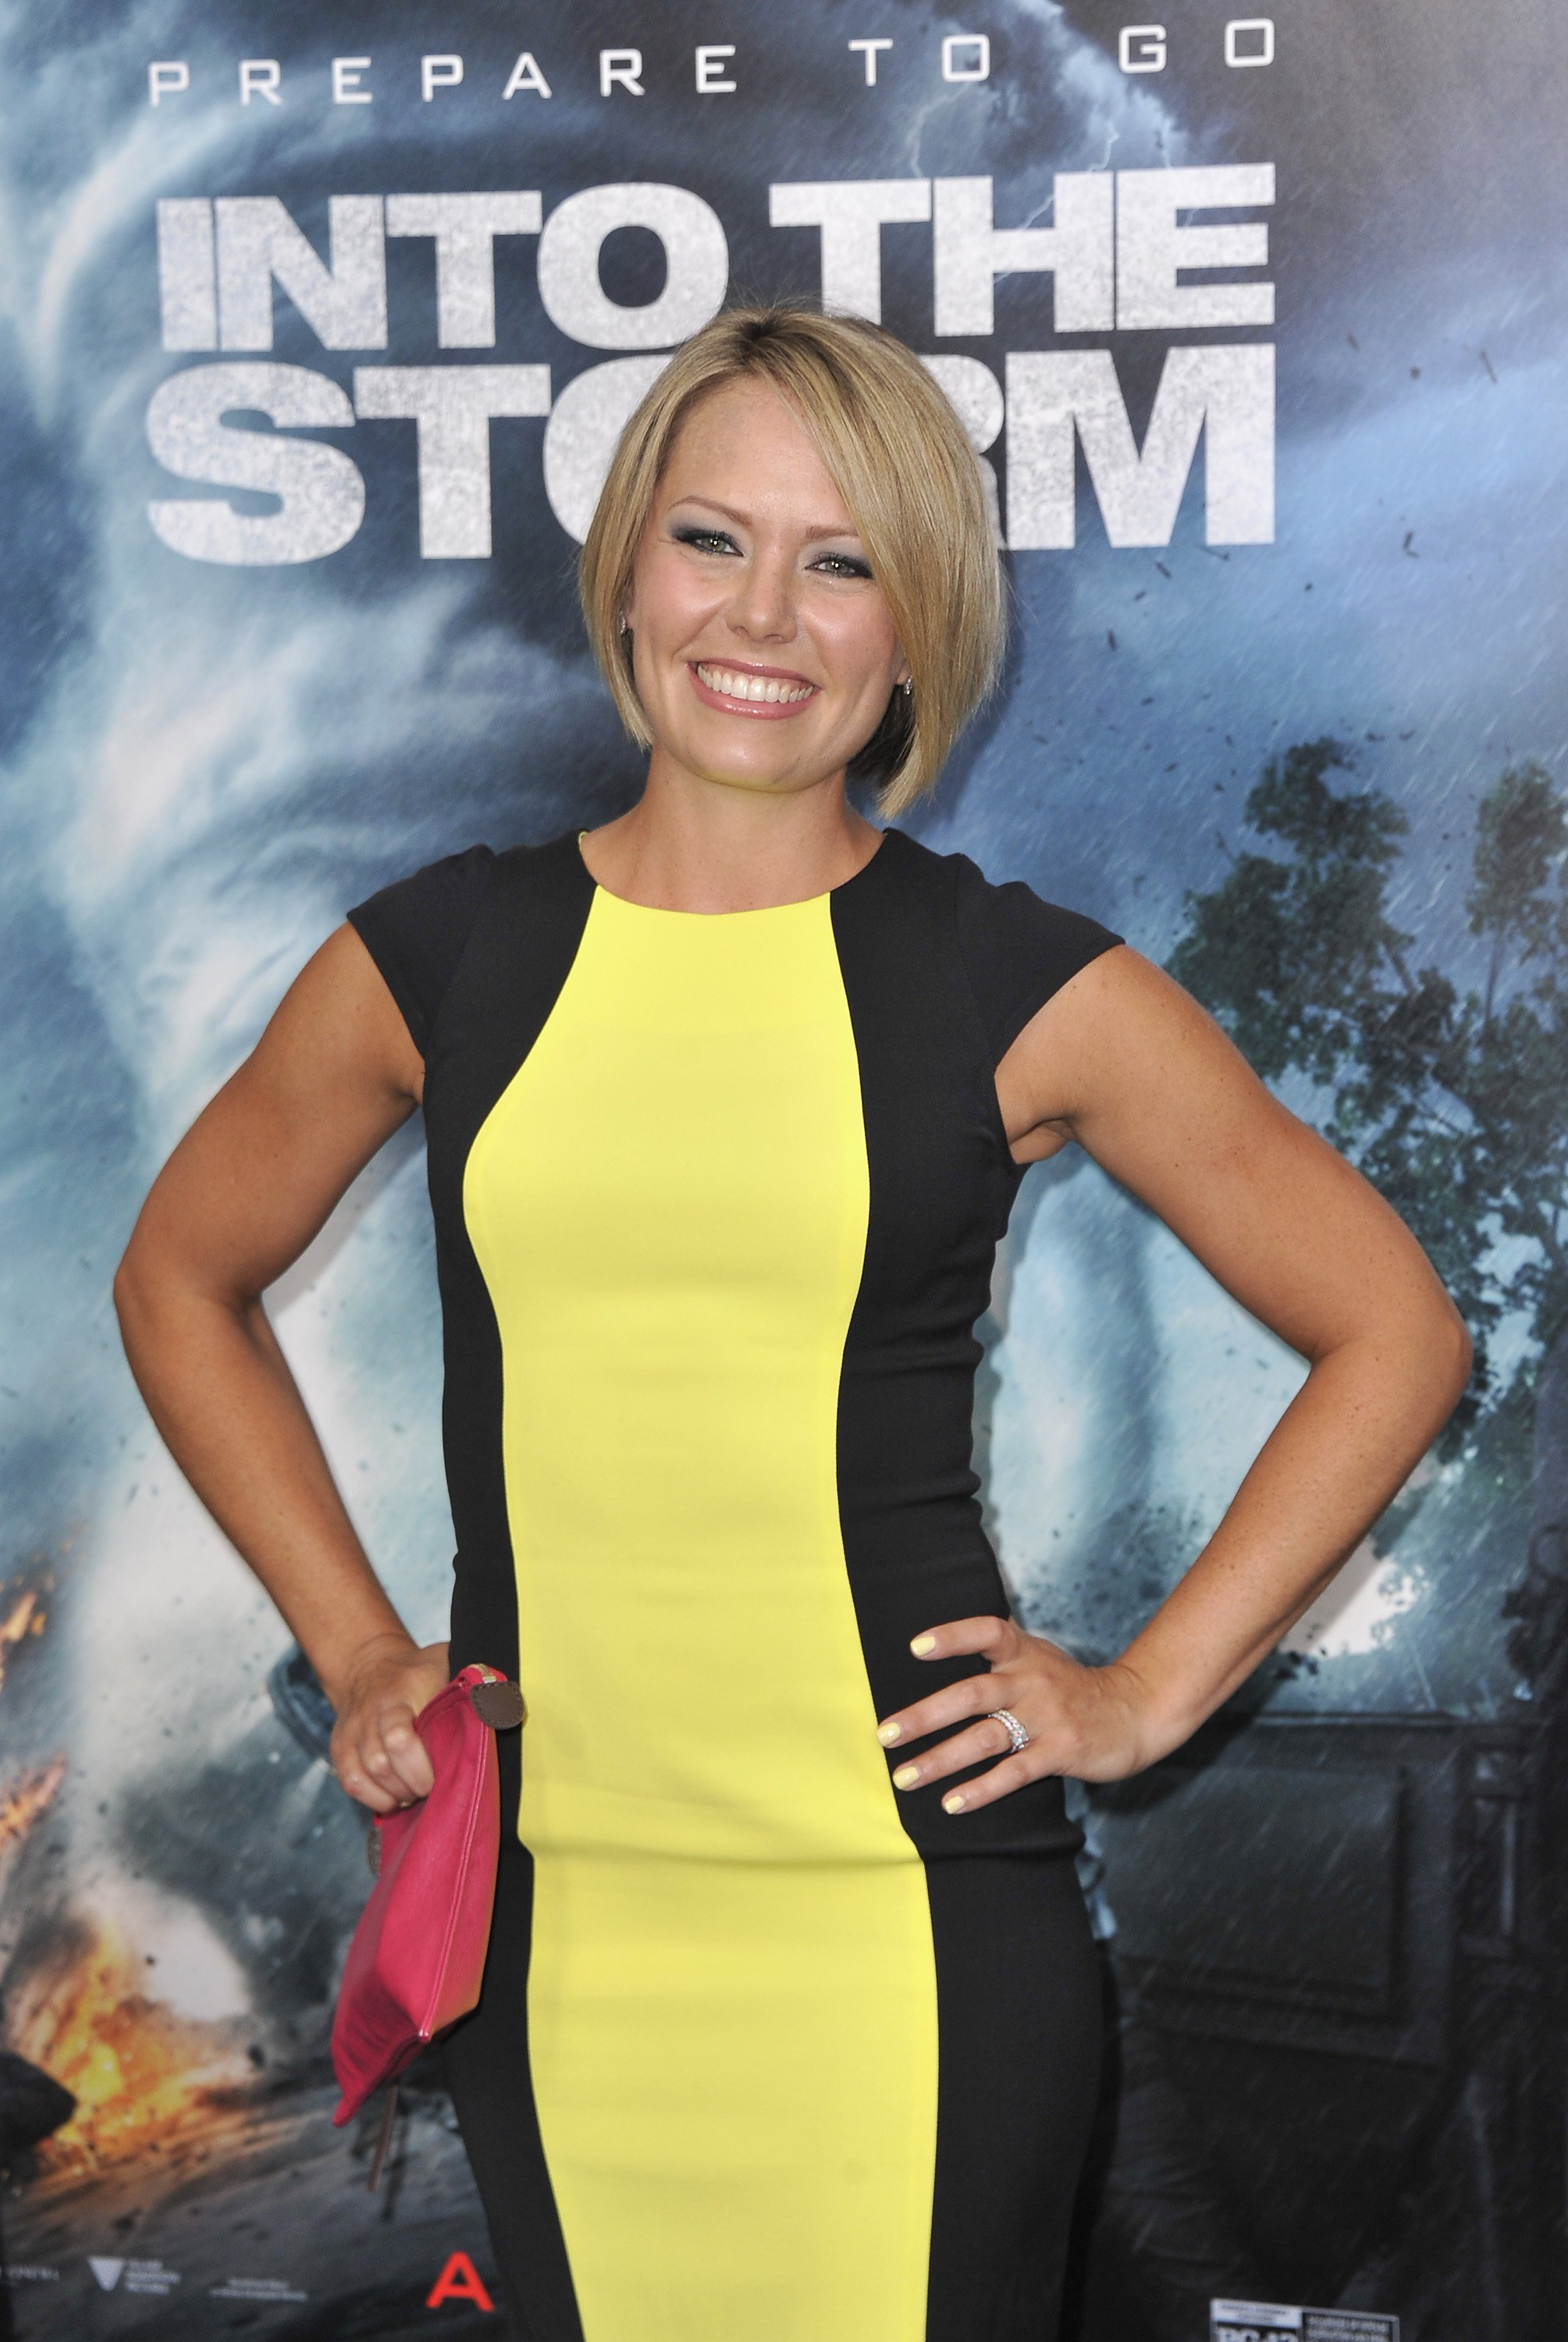 """Dylan Dreyer attends the premiere of """"Into the Storm"""" in New York City on August 4, 2014 